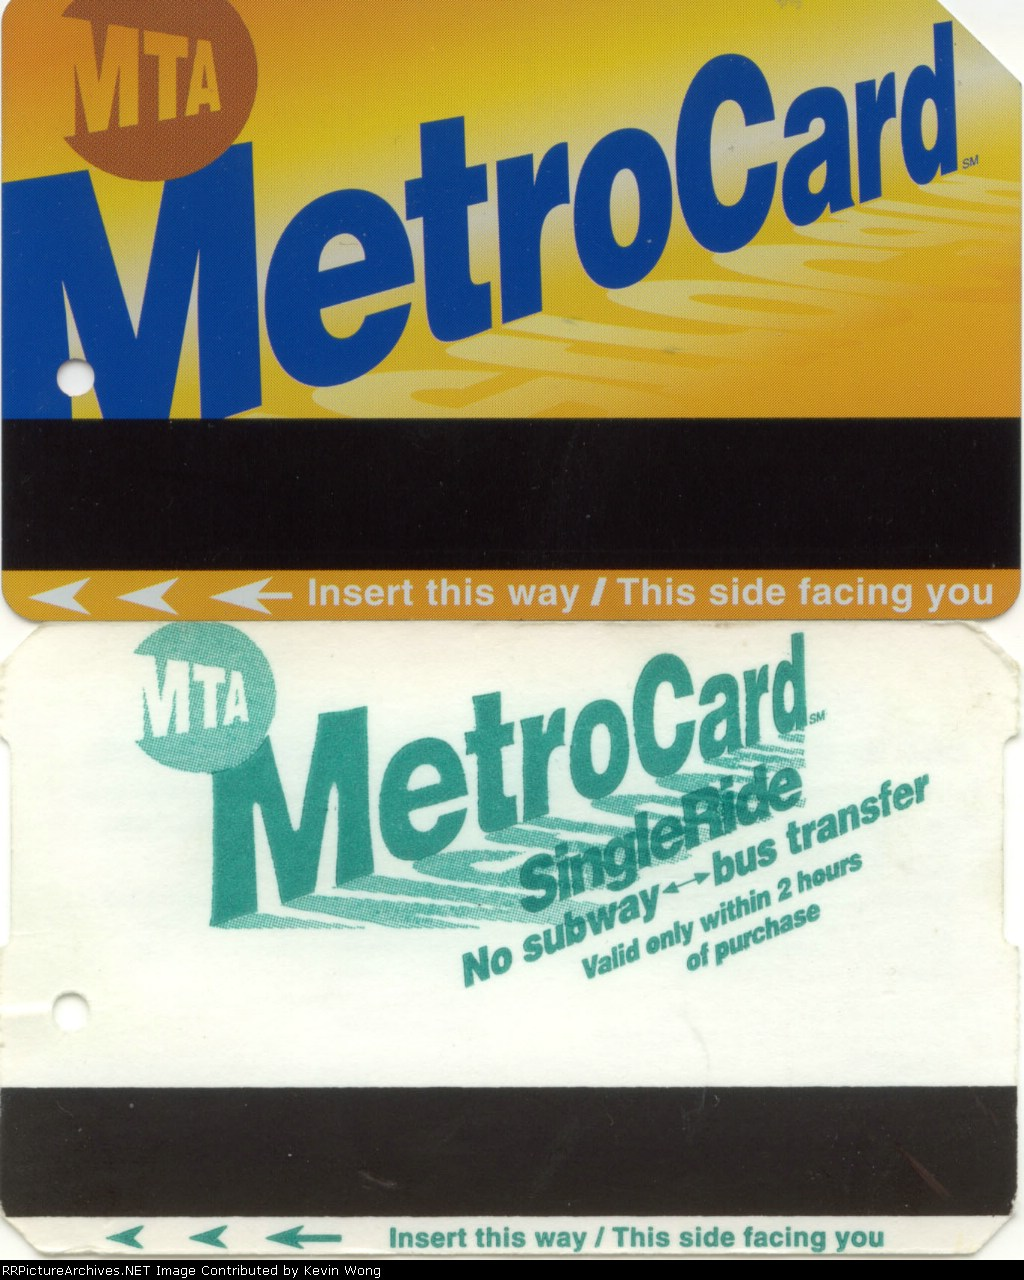 MetroCard-basic and Single Ride